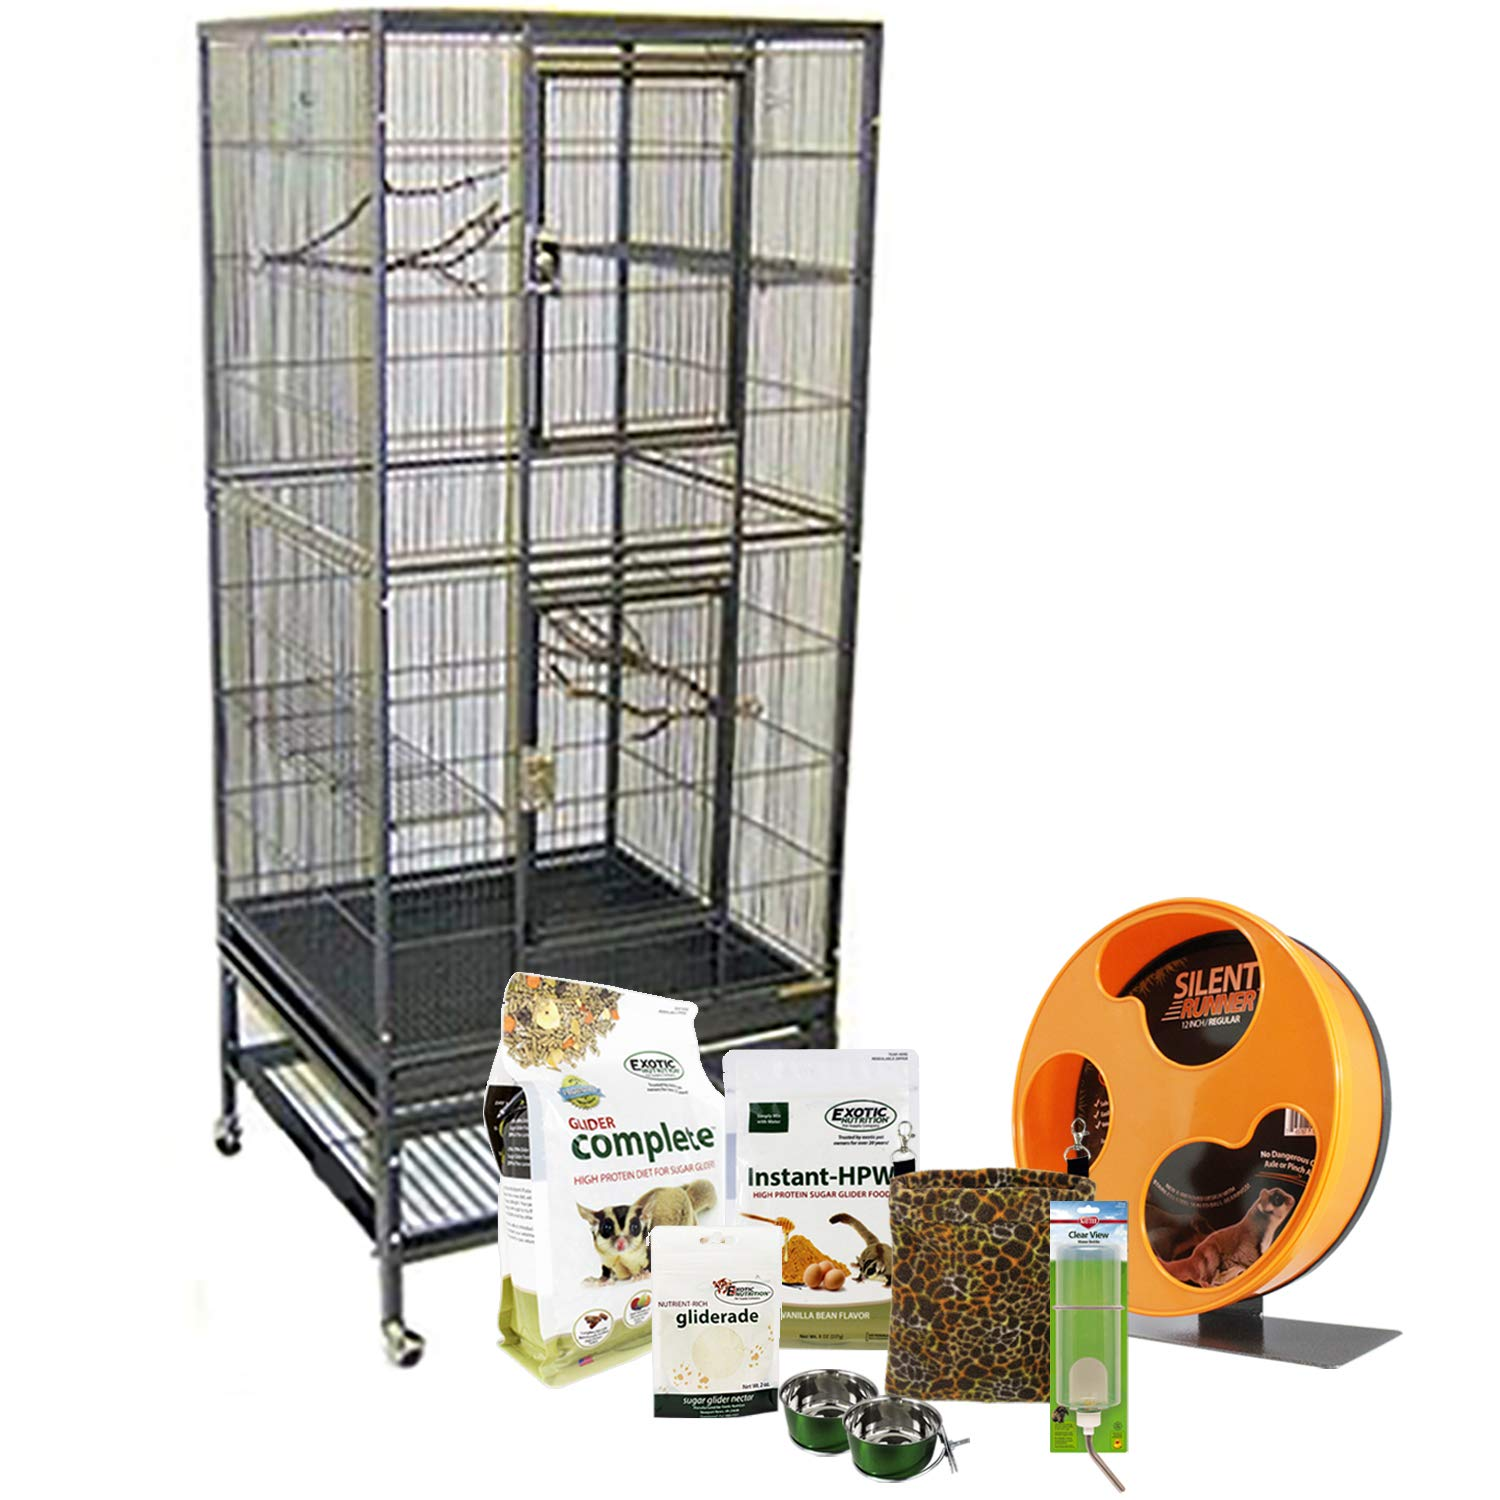 Exotic Nutrition Madagascar Cage & Starter Package for Sugar Gliders - Includes Durable Cage, Exercise Wheel, Healthy Food Assortment, Water Bottle, Food Dishes & Nest Pouch by Exotic Nutrition